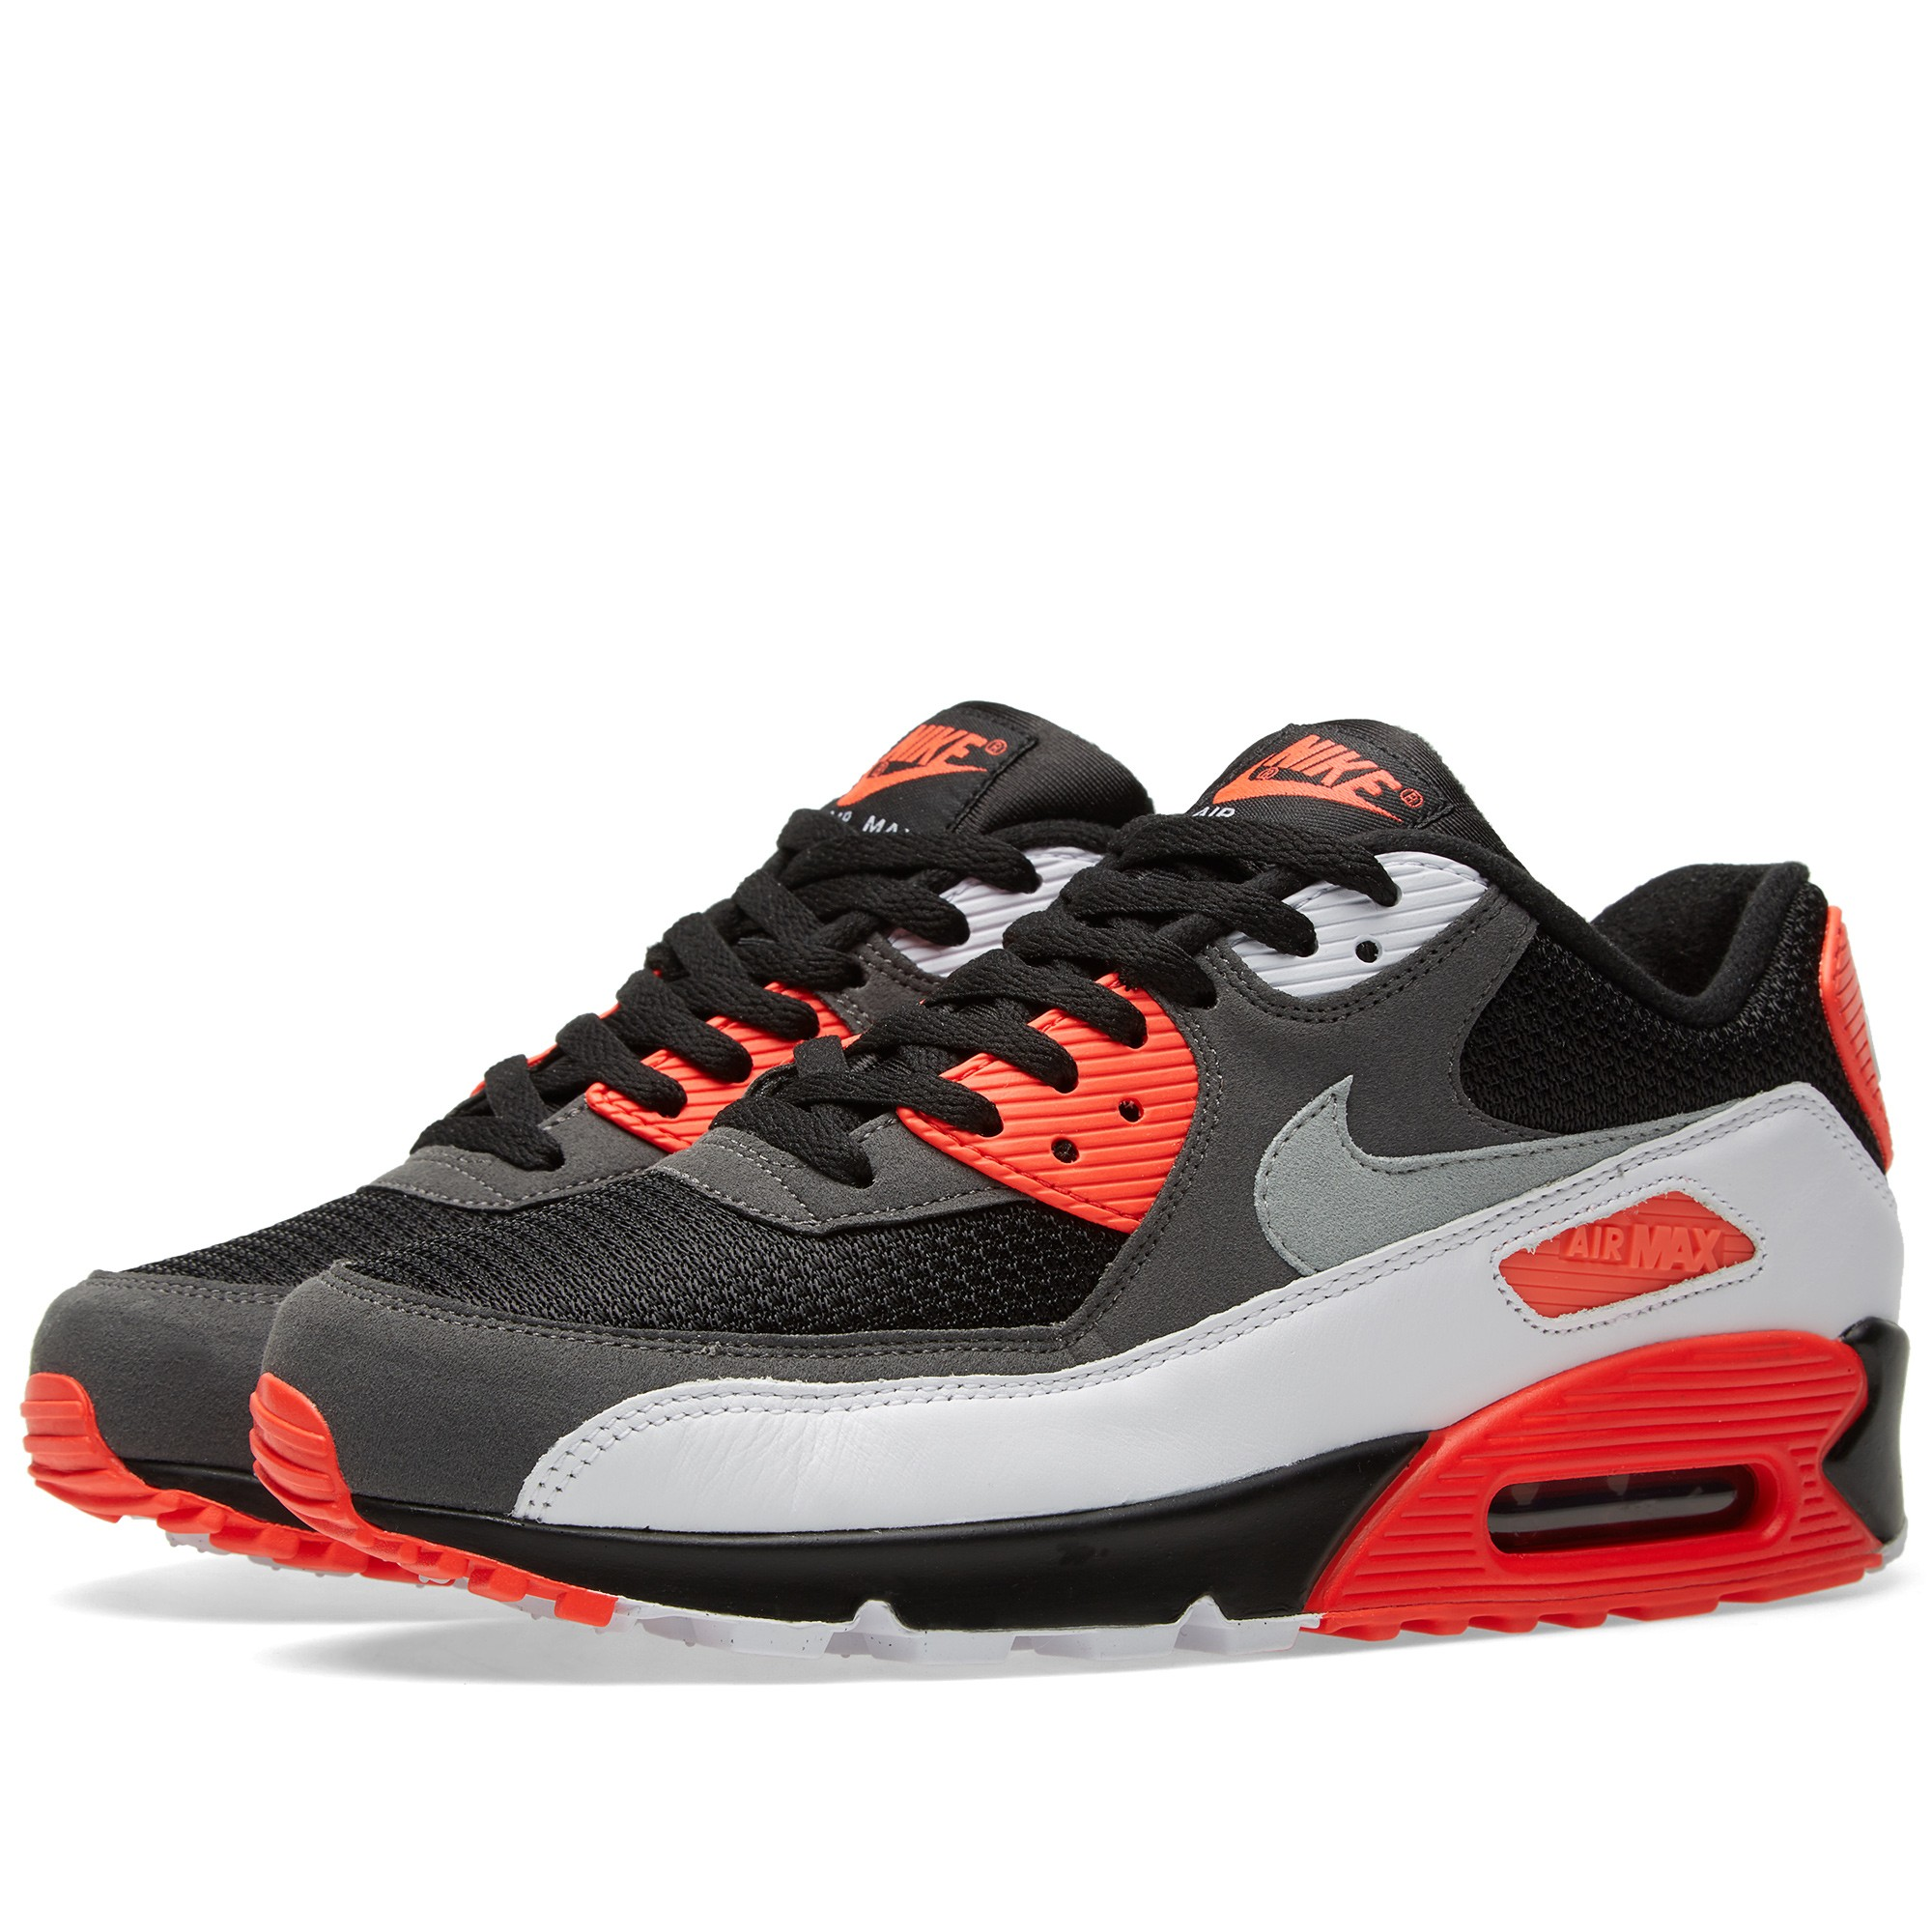 Air Max 90 OG and Reverse Infrared